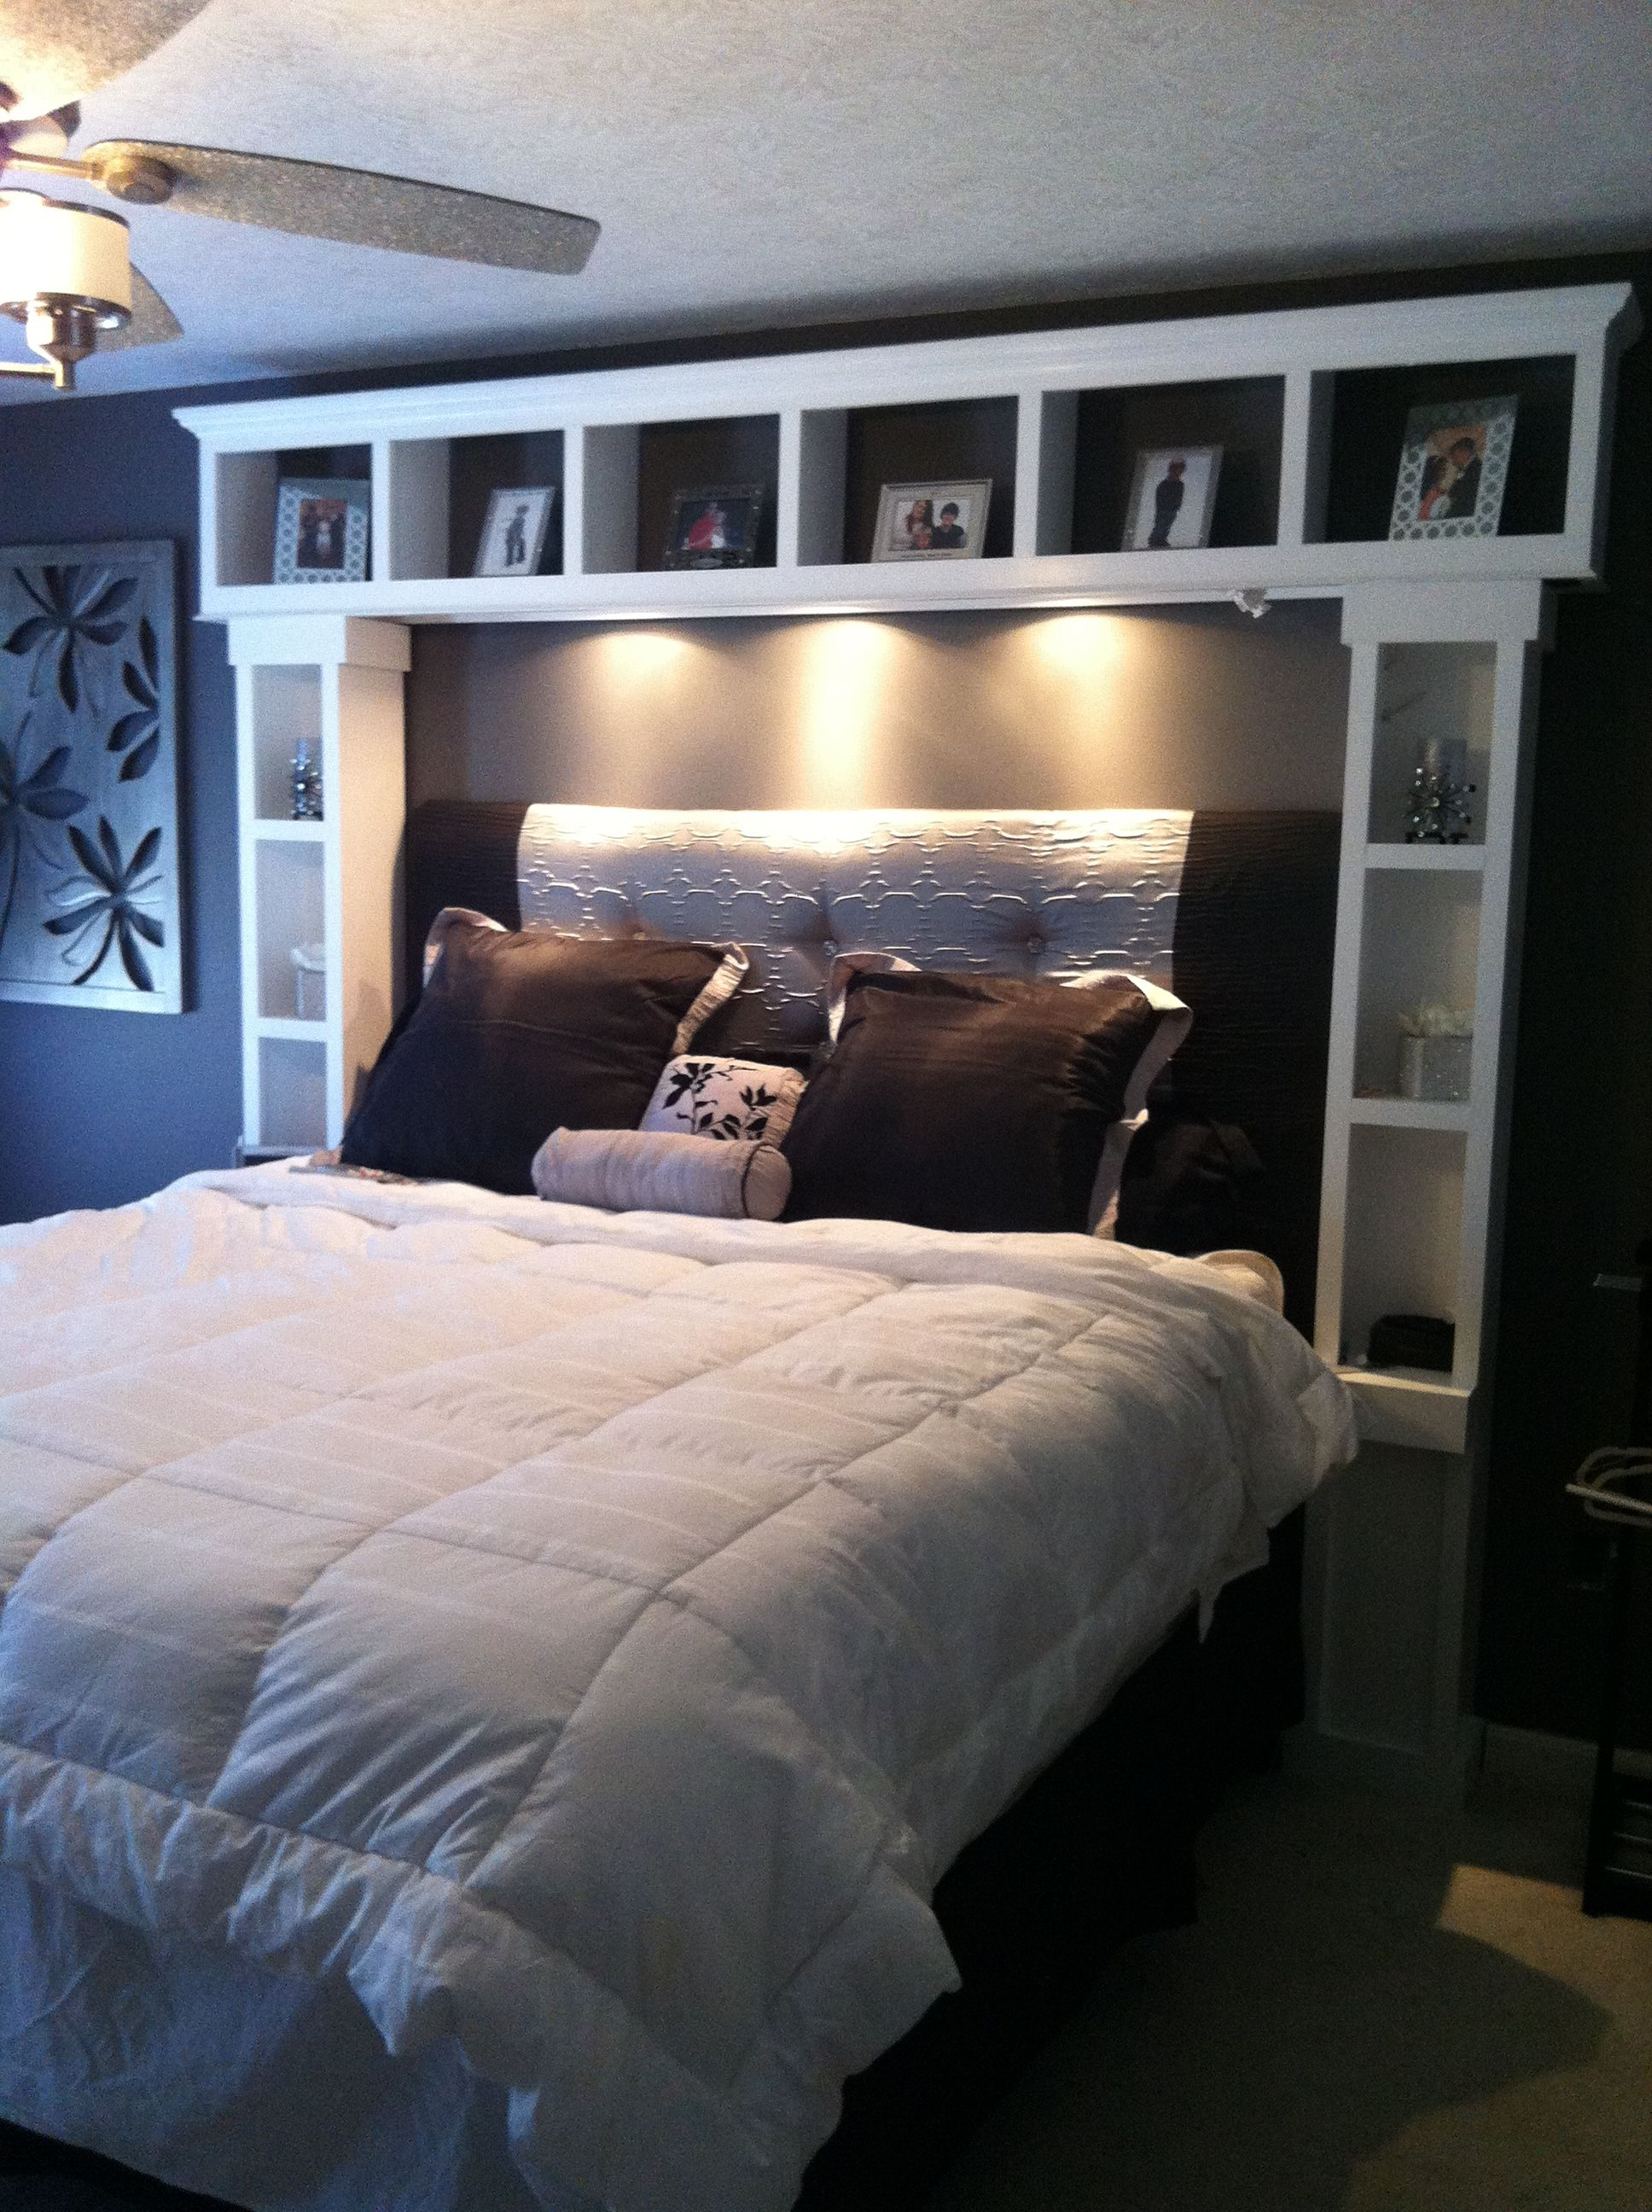 DIY bed  I want these shelves  its like our headboard times 10     DIY bed  I want these shelves  its like our headboard times 10